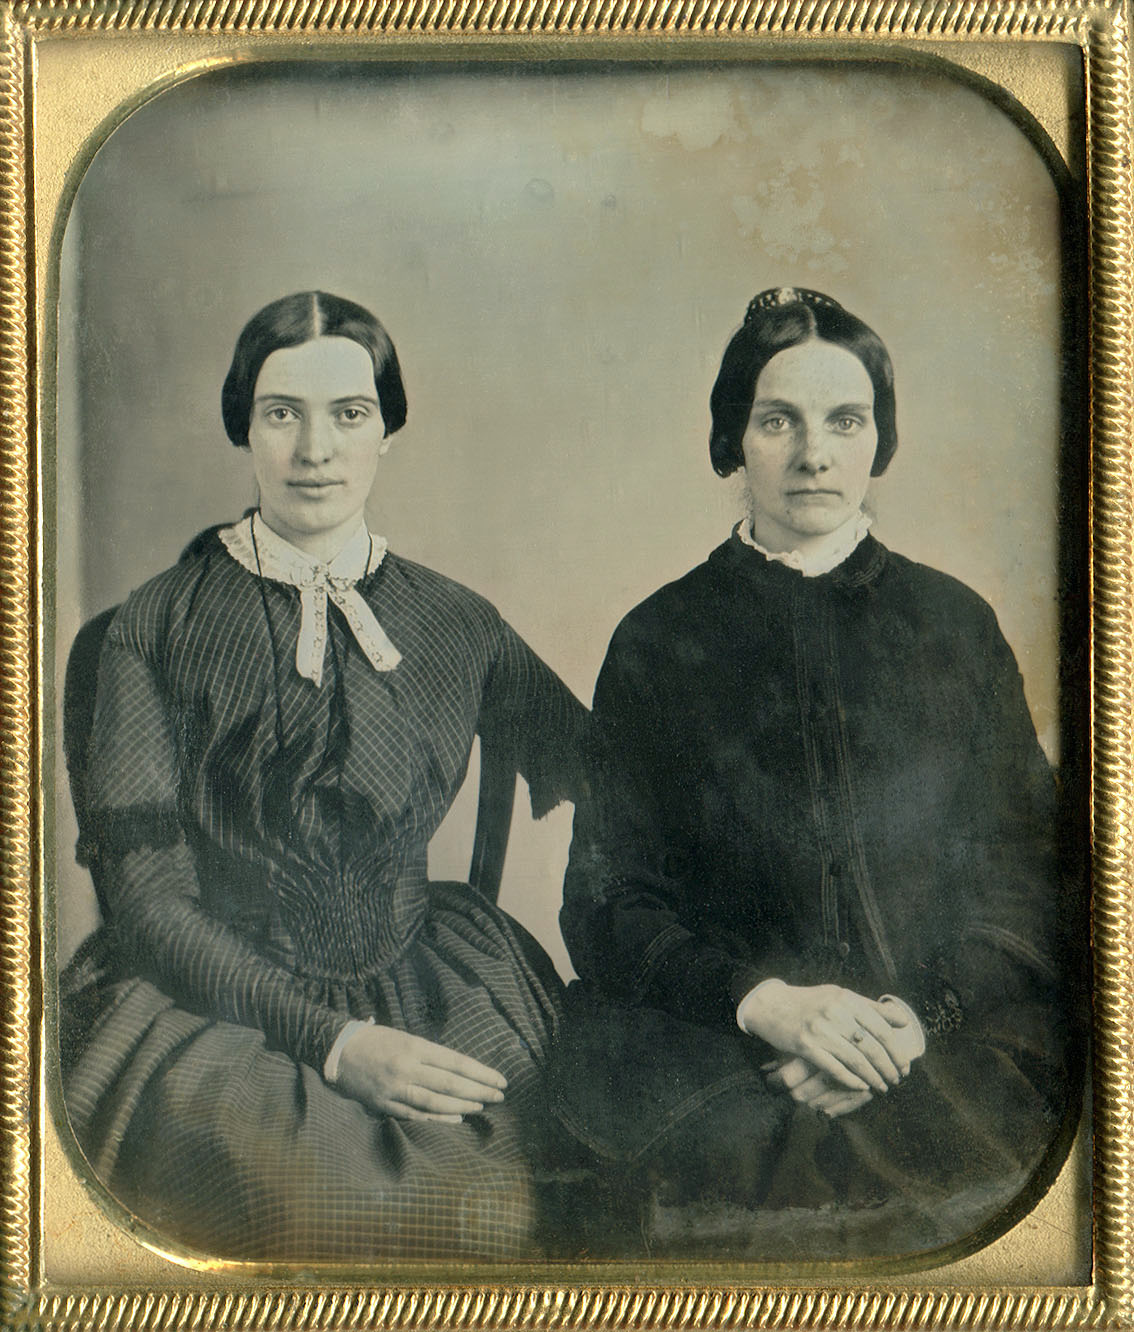 emily dickinson essay pseudonymous posts dickinson electronic  a new daguerreotype of emily dickinson dickinson electronic a new daguerreotype of emily dickinson dickinson electronic